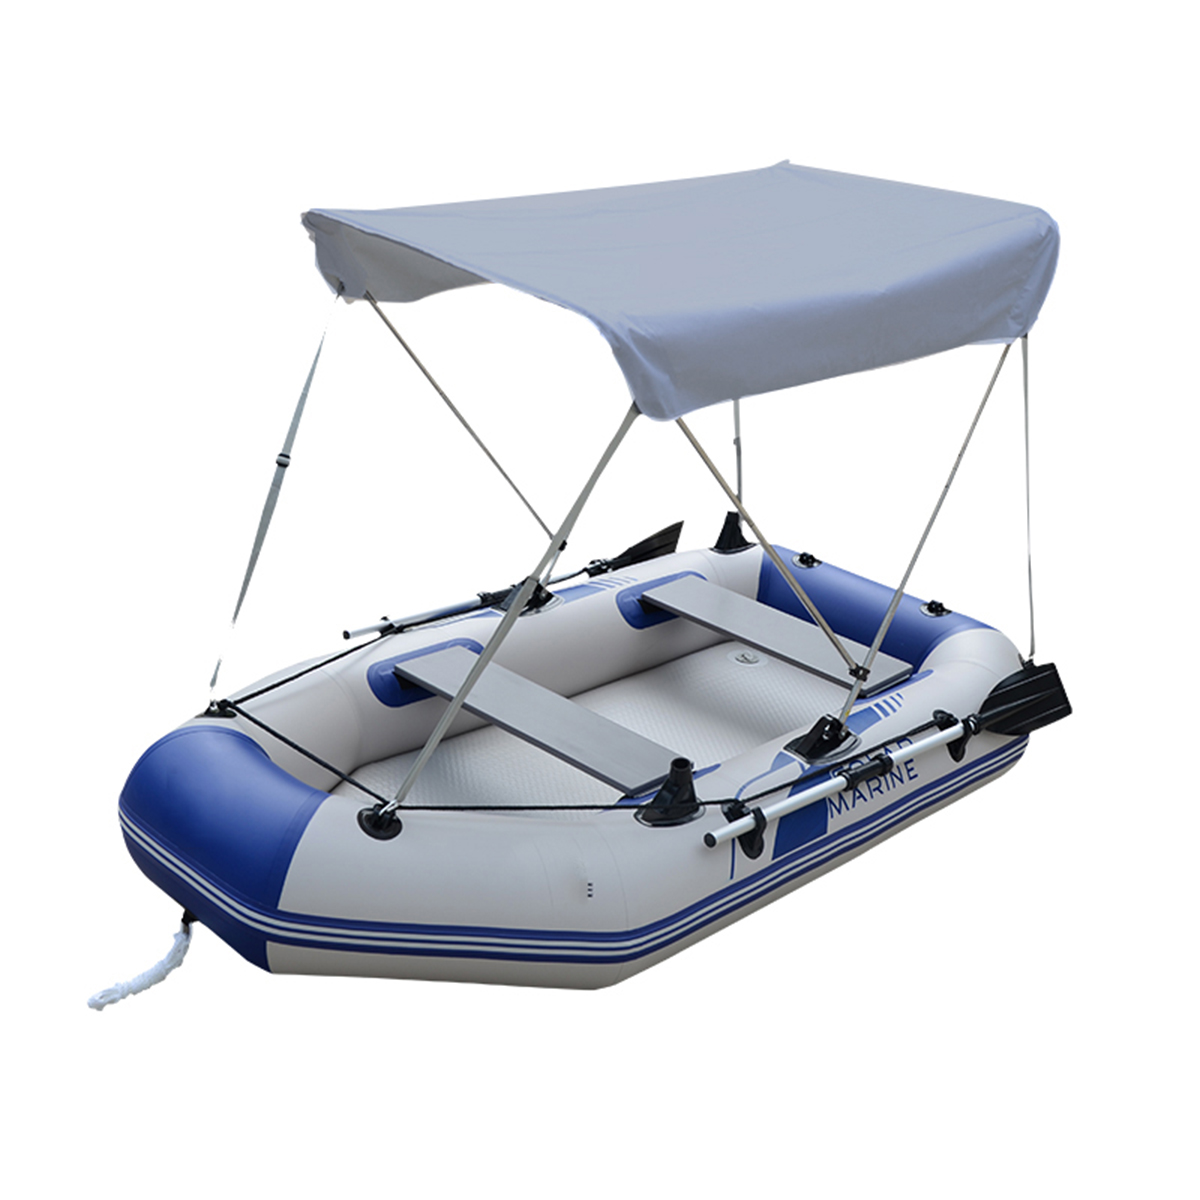 2 Person Sun Shelter For Fish Boat Waterproof Inflatables Boat Sunshade Rowing Boat Tent Top Canopy Rain Cover UV Protect Oxford